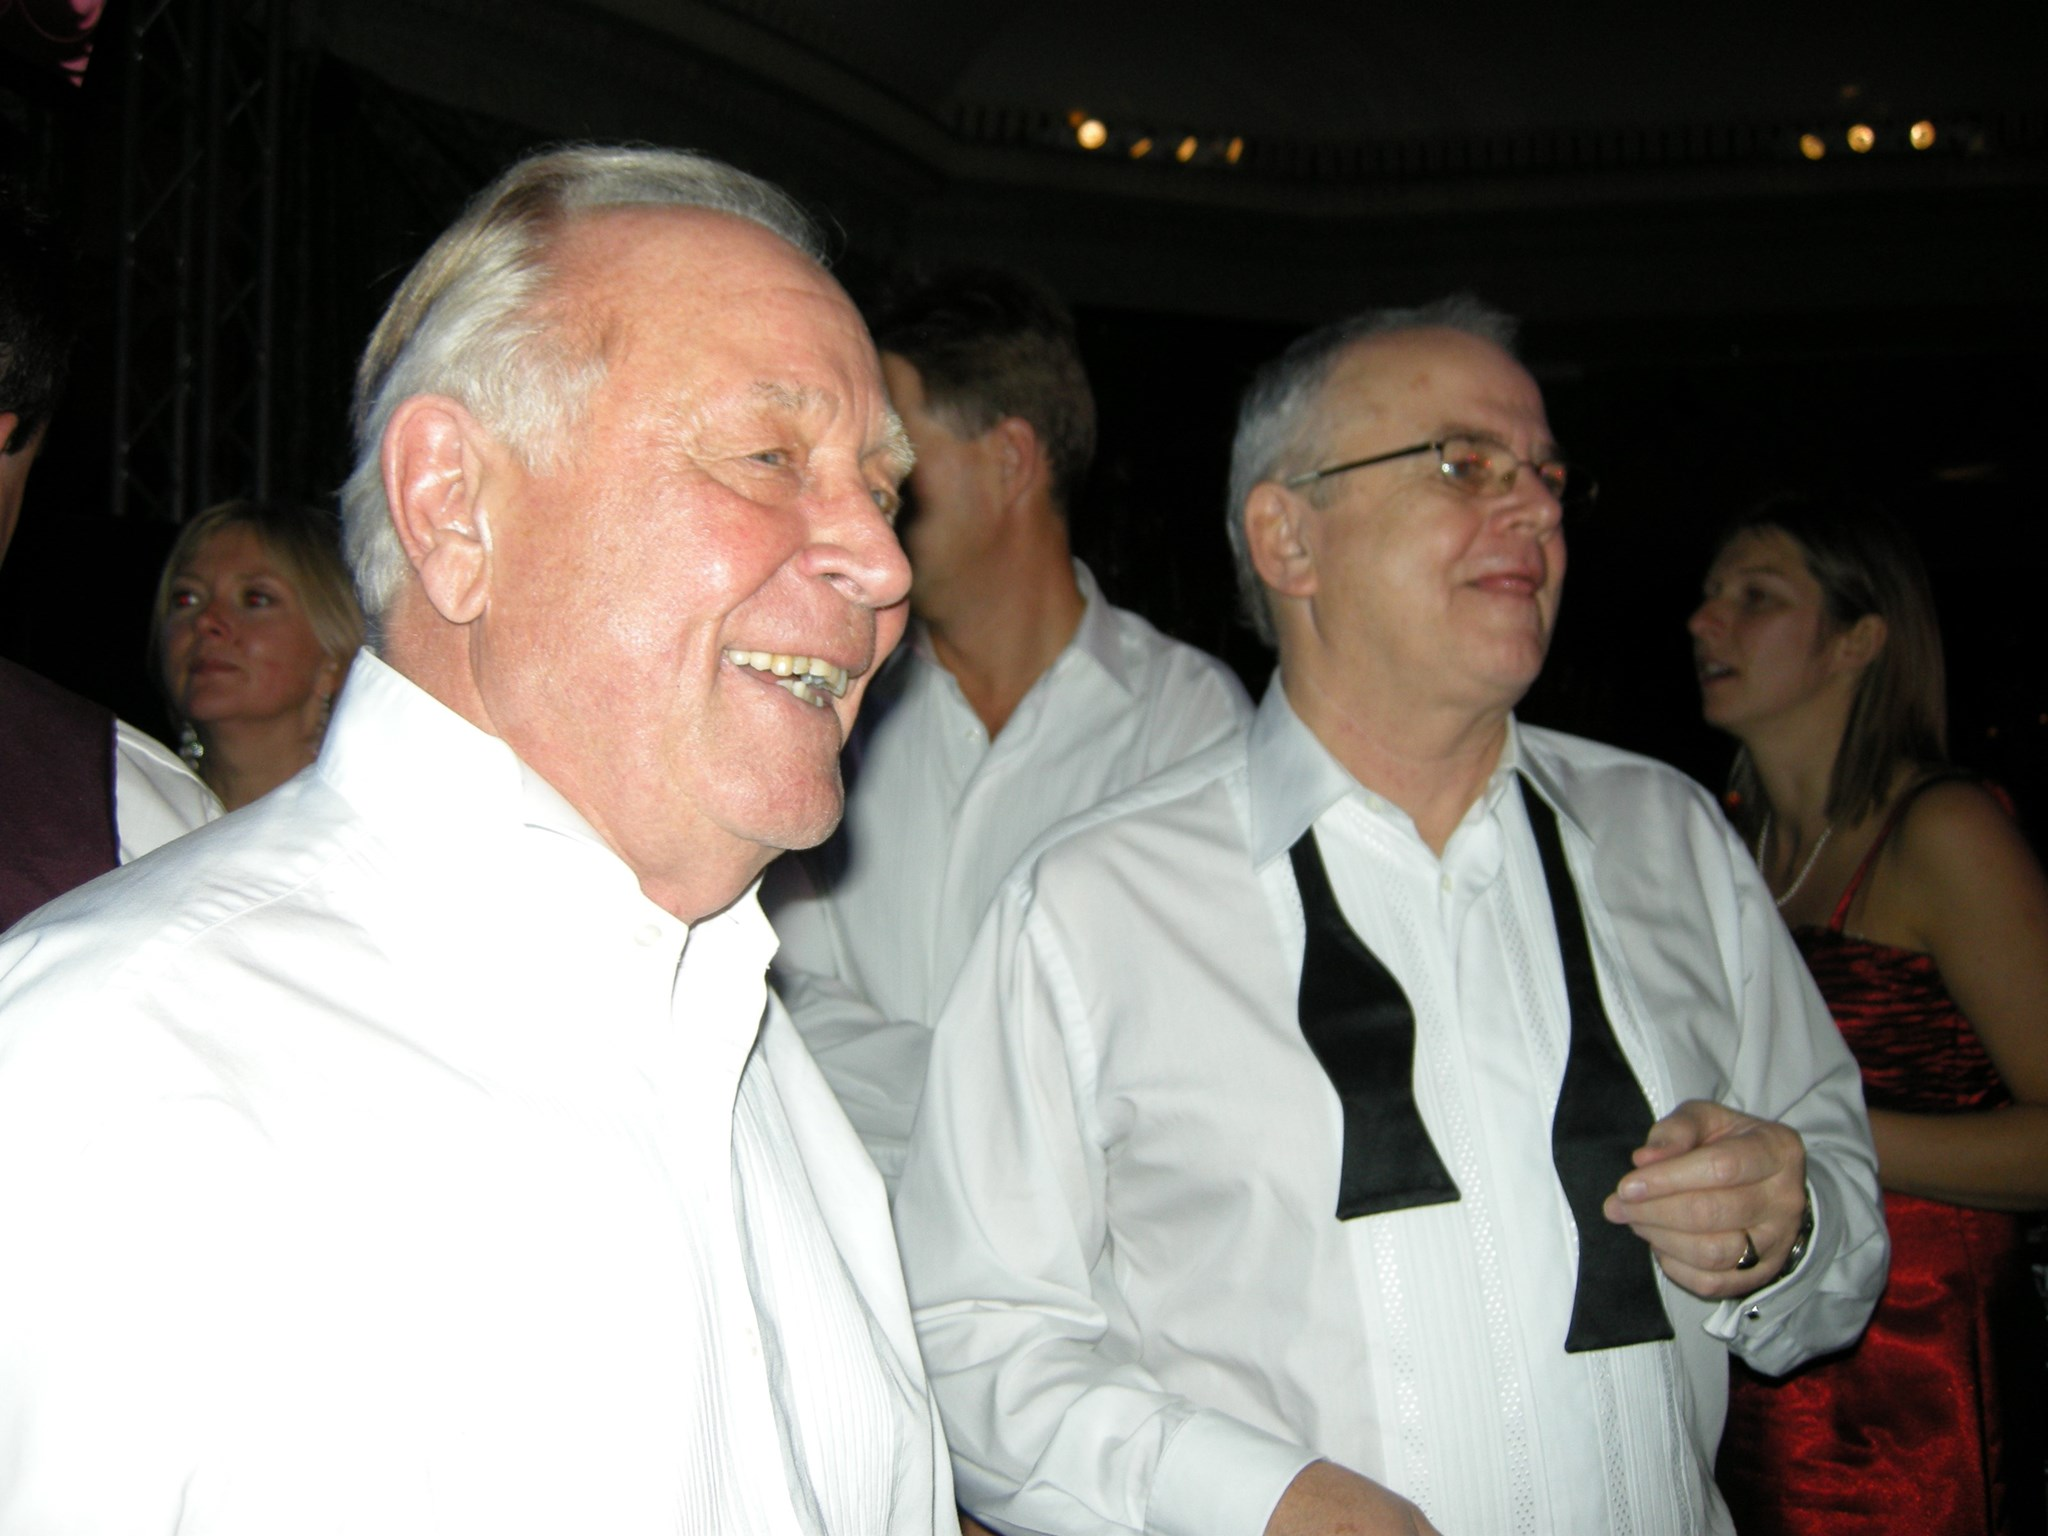 Hughie with Peter Smith at the Make a Wish Ball 2007.